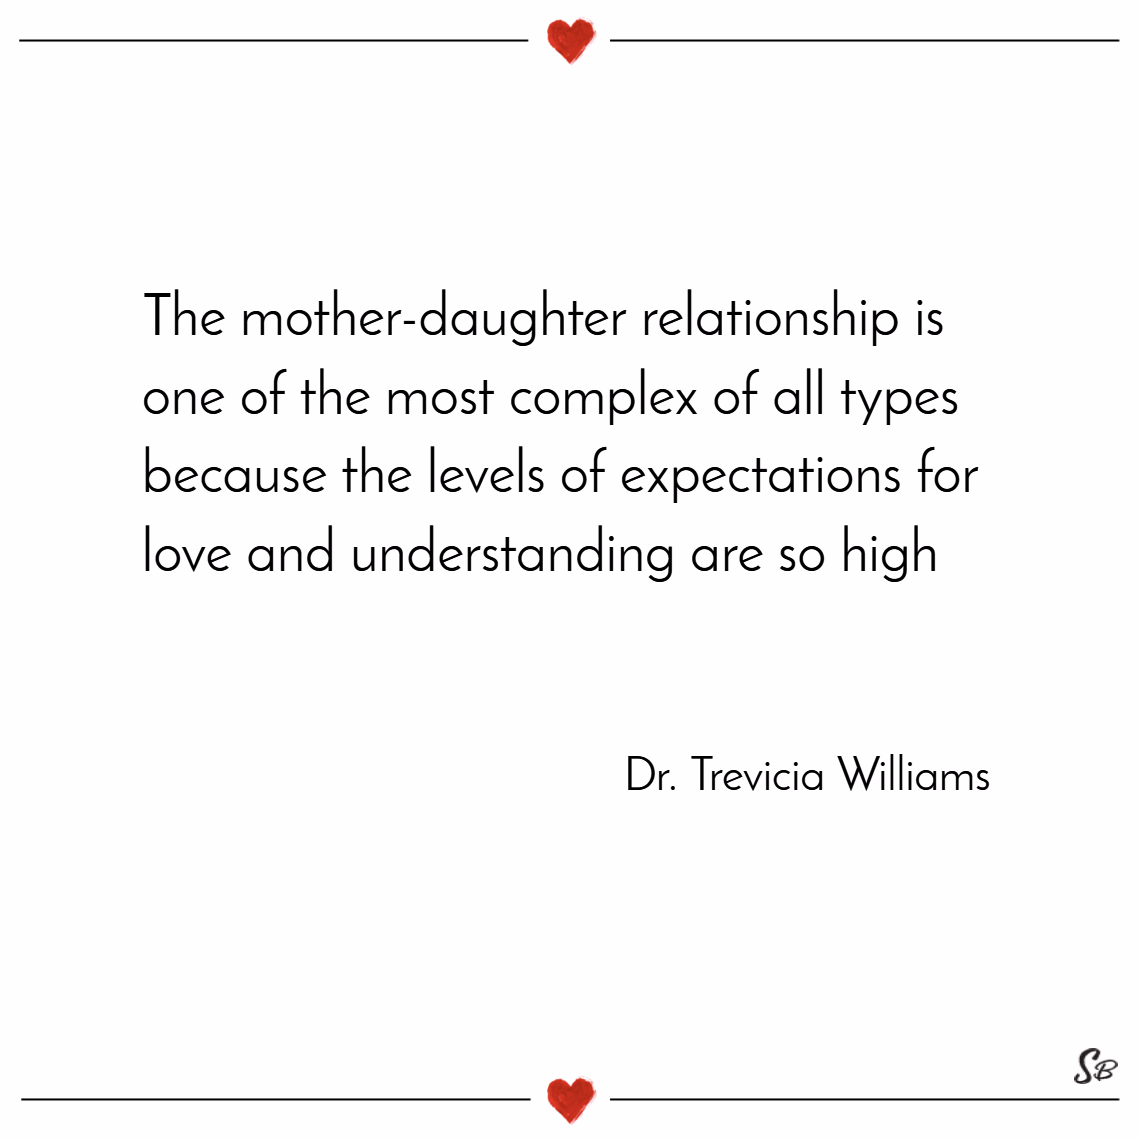 The mother daughter relationship is one of the most complex of all types because the levels of expectations for love and understanding are so high. – dr. trevicia williams